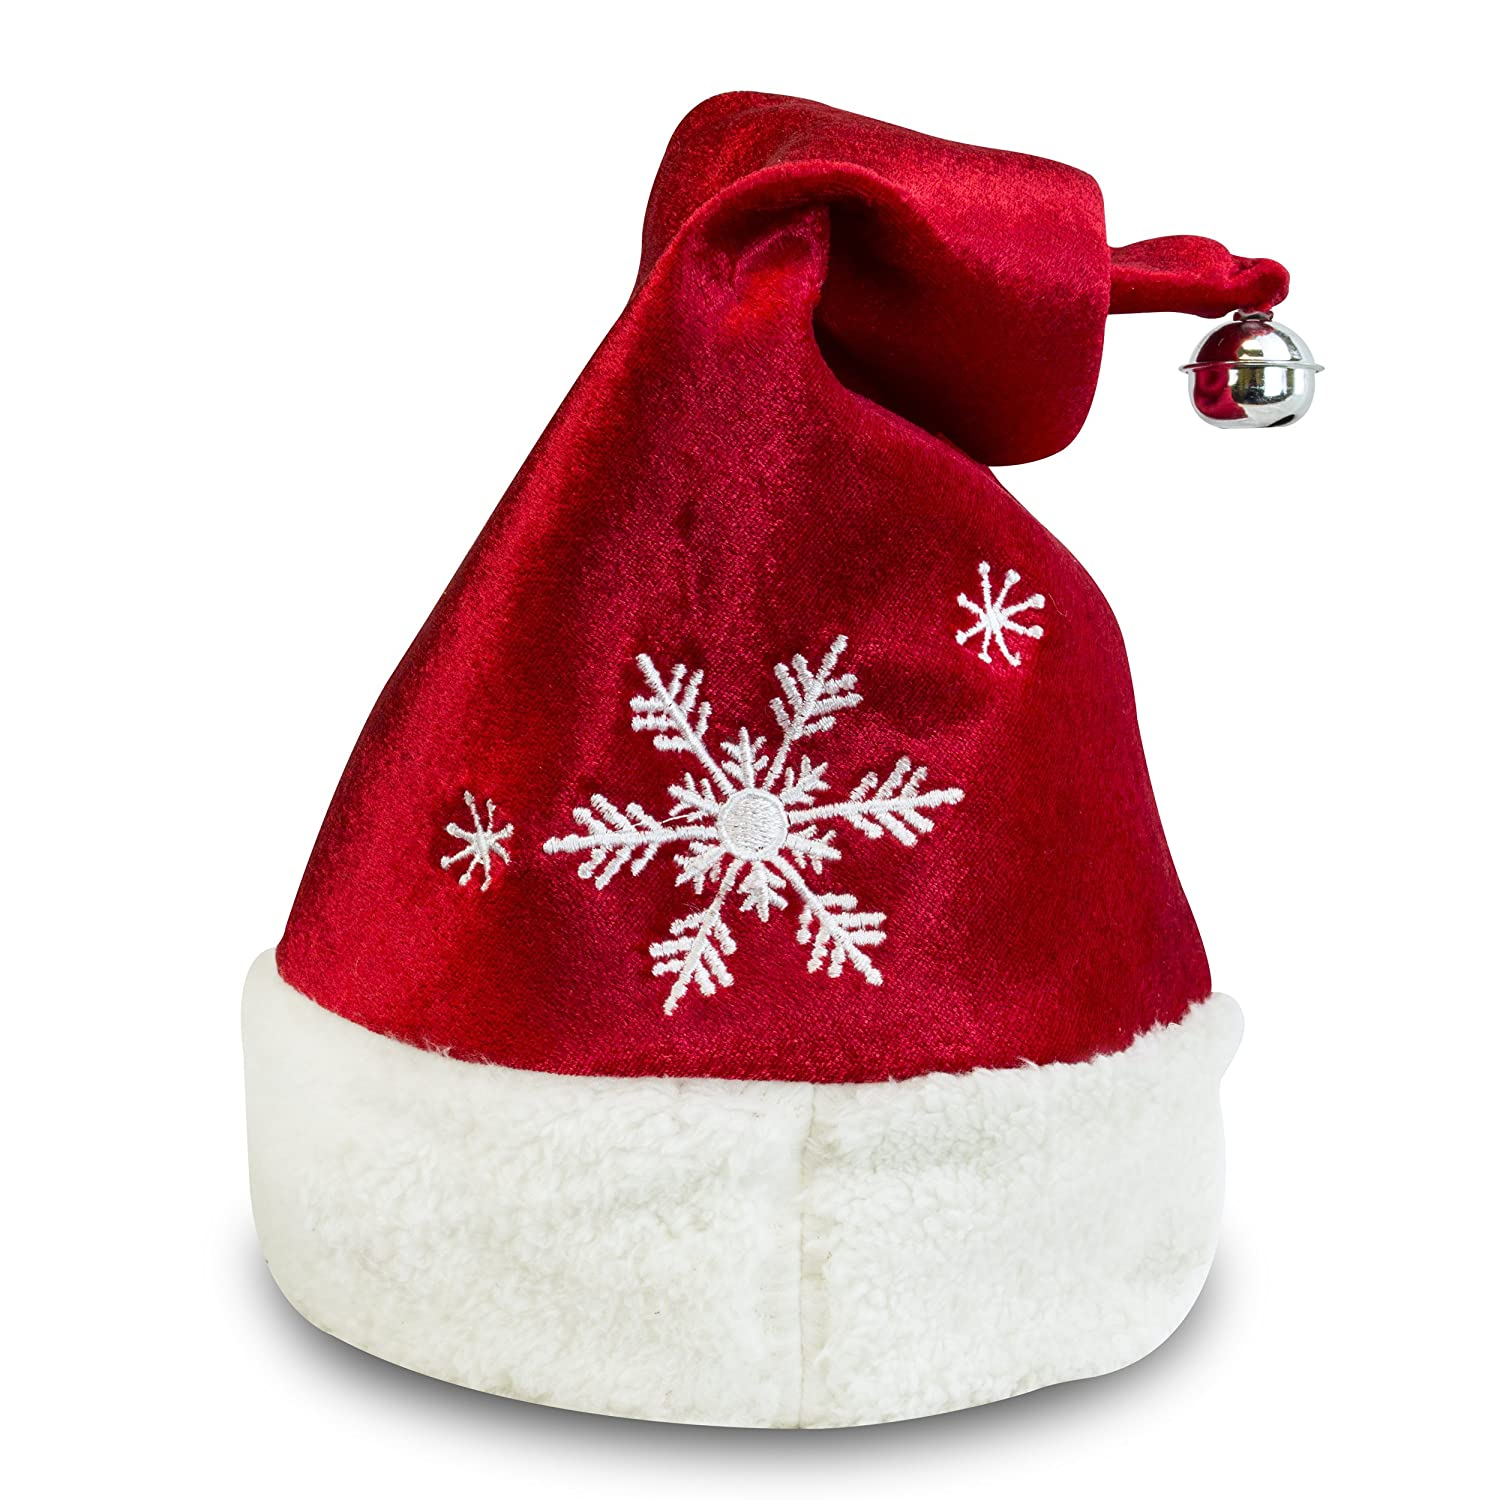 ef5c0937f0b7f Amazon.com  Musical Animated Christmas Hat Plays